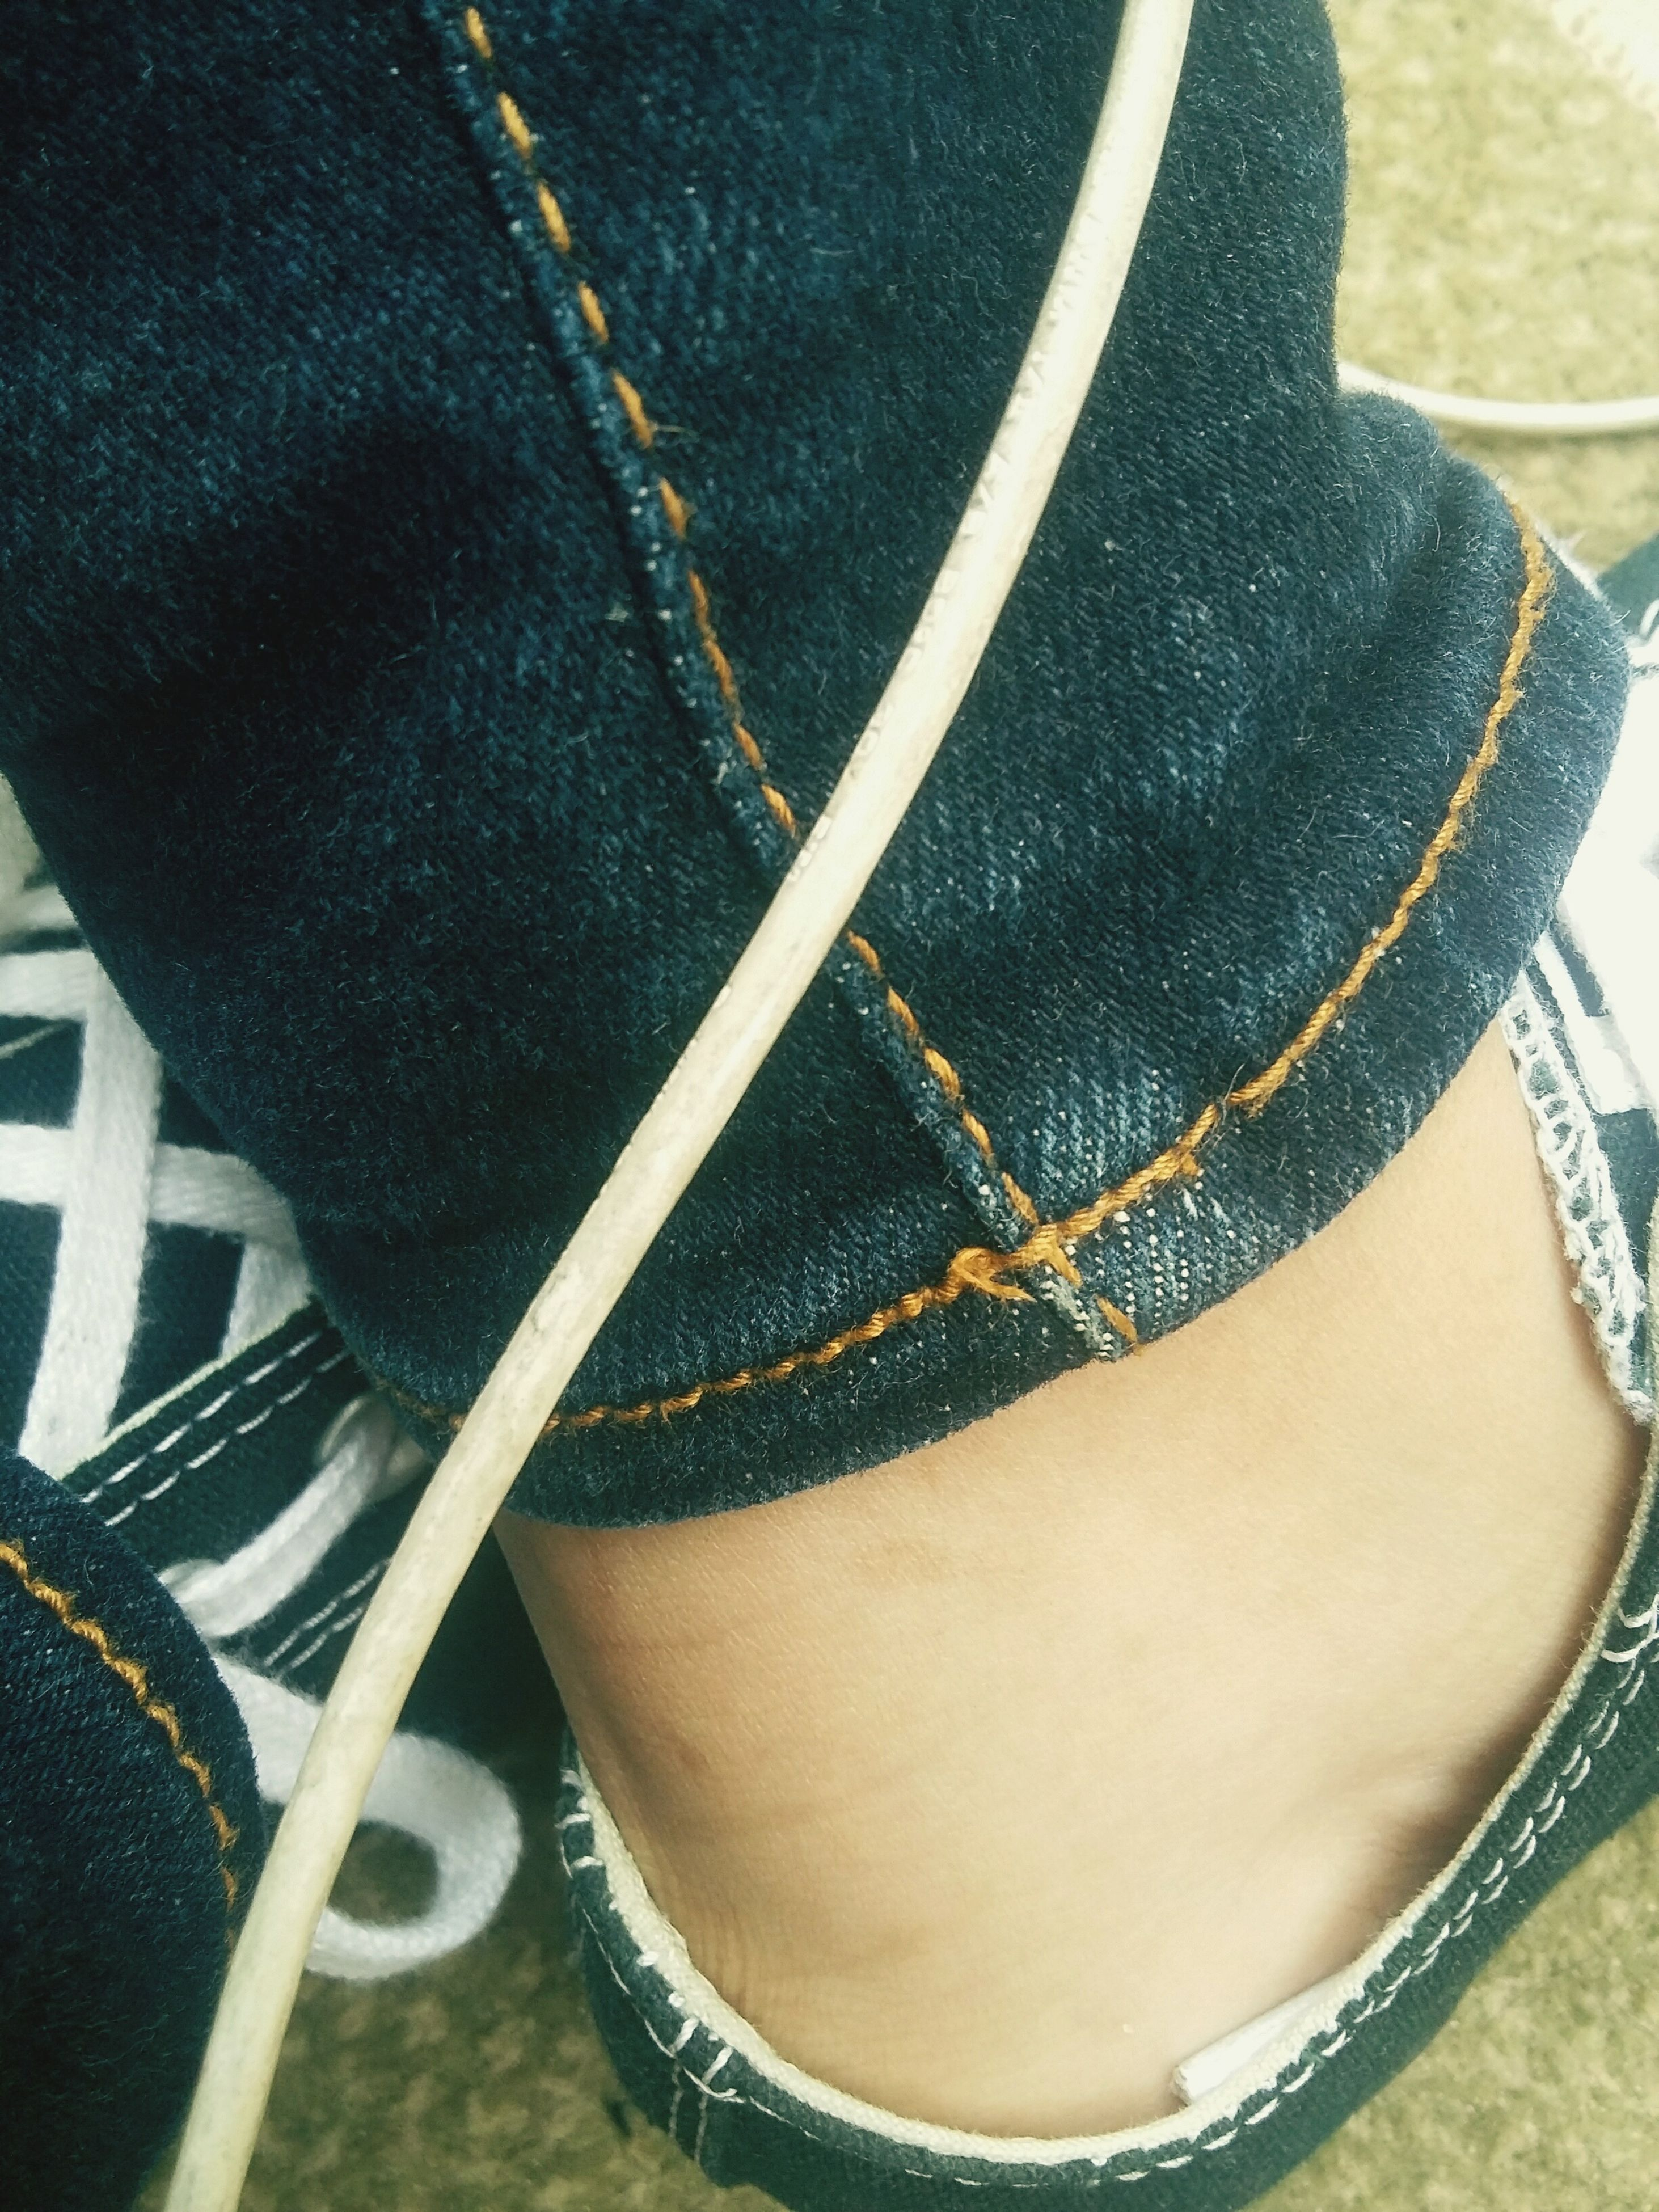 lifestyles, low section, person, fashion, leisure activity, close-up, part of, casual clothing, young women, personal perspective, standing, high angle view, shoe, wearing, young adult, focus on foreground